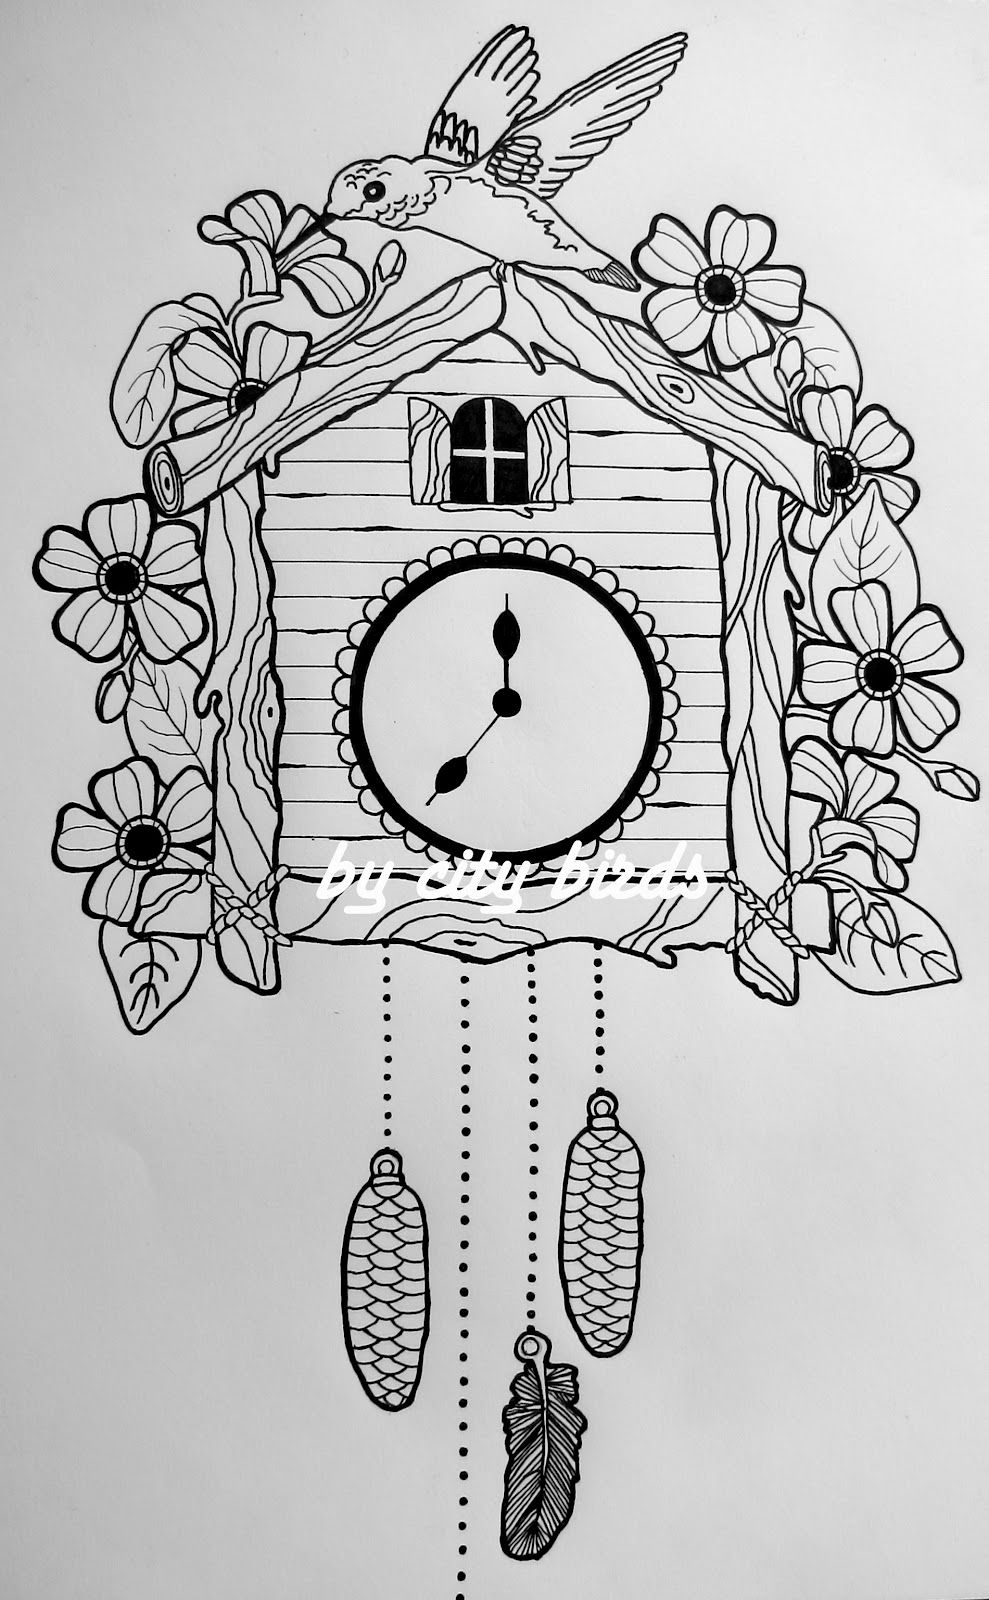 Clock Coloring Pages | Coloring pages for kids, Coloring pages, Color | 1600x989